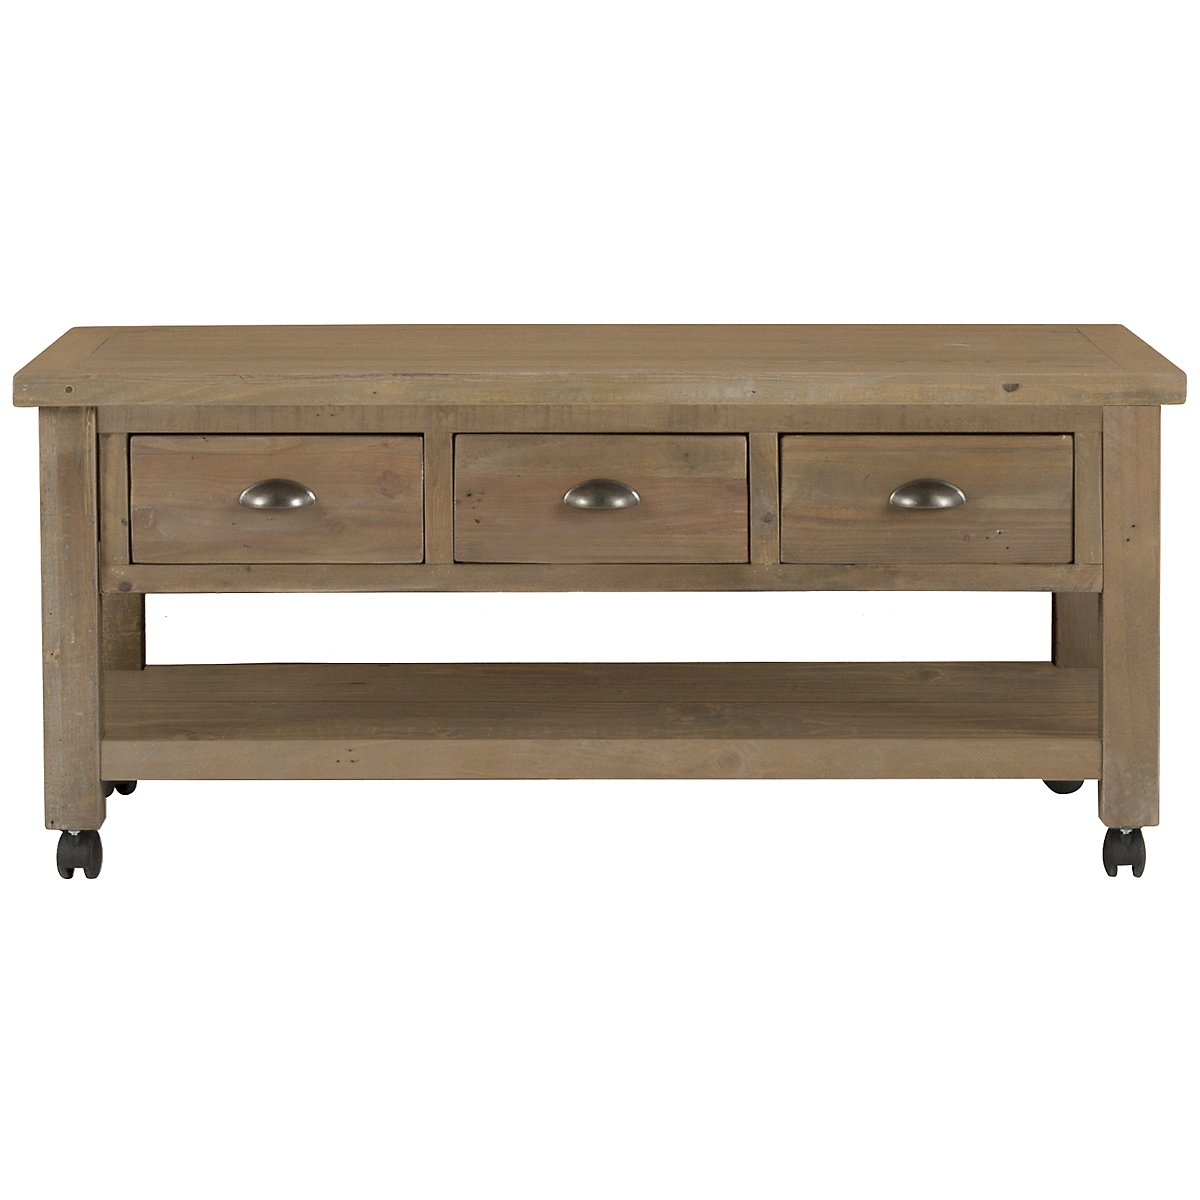 City Furniture Jaden Light Tone Storage Coffee Table